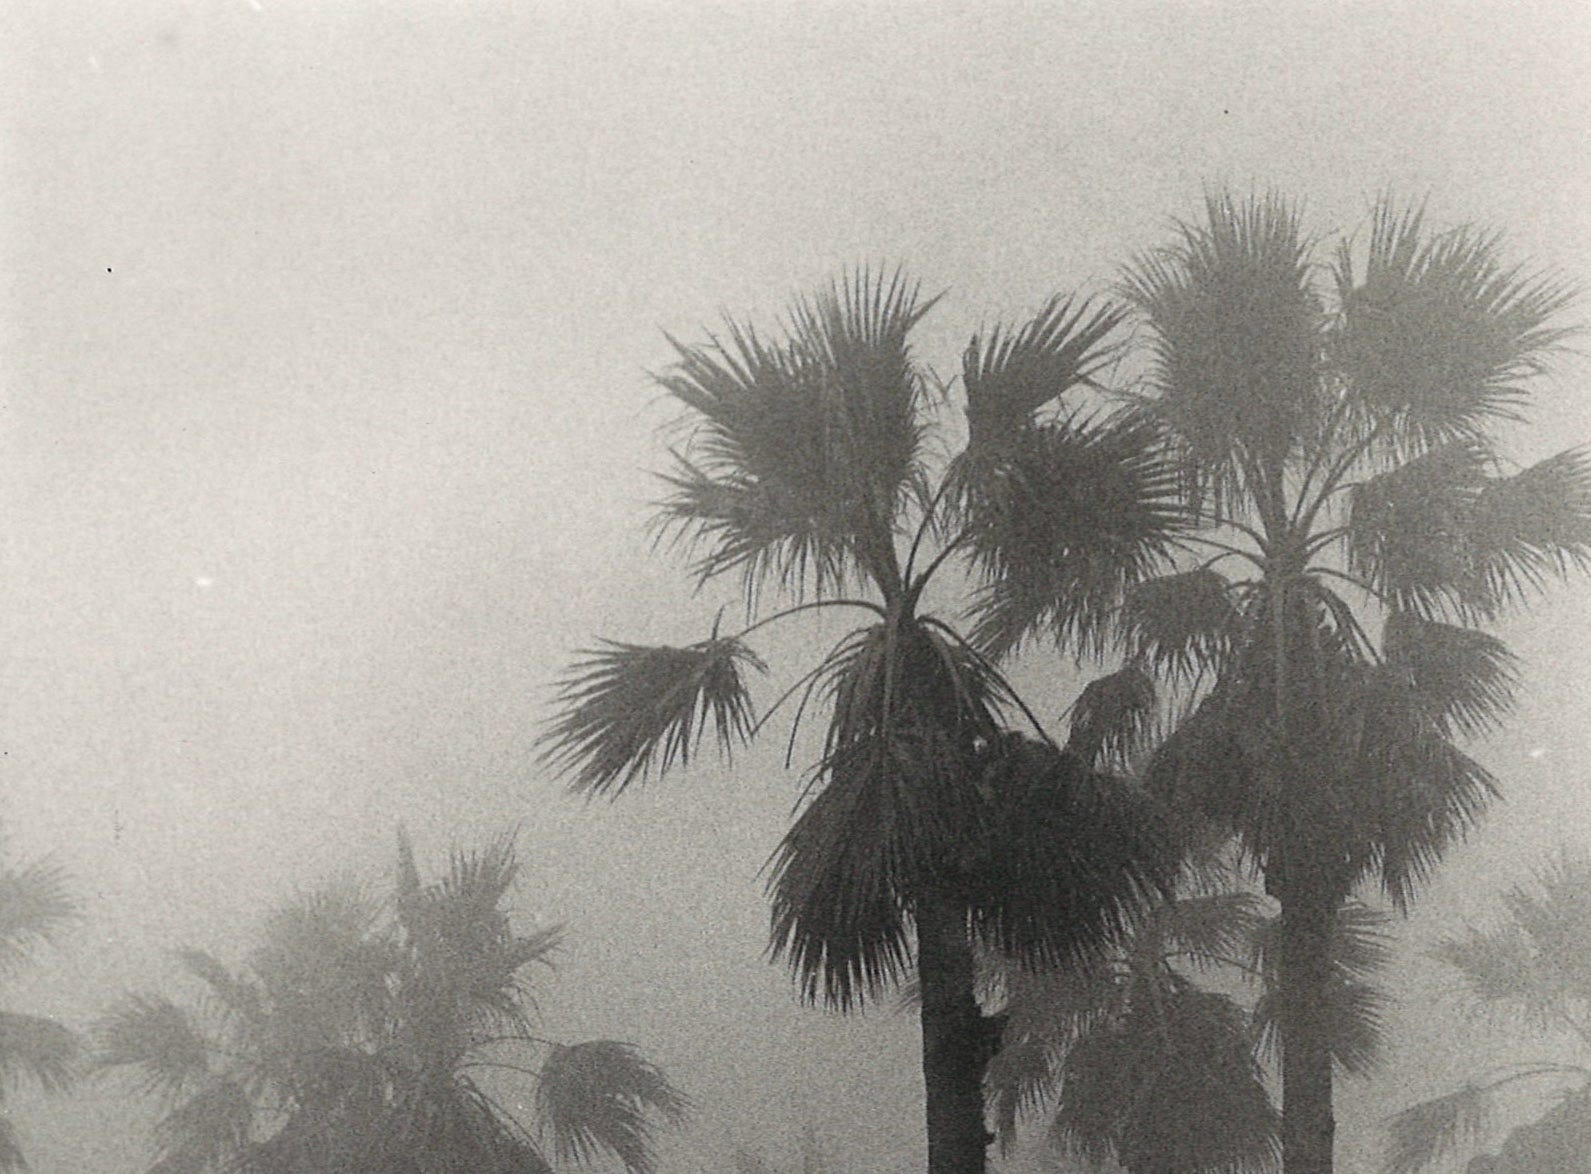 The palm trees in McCaughn Park in Corpus Christi fade into the fog on Jan. 30, 1985.